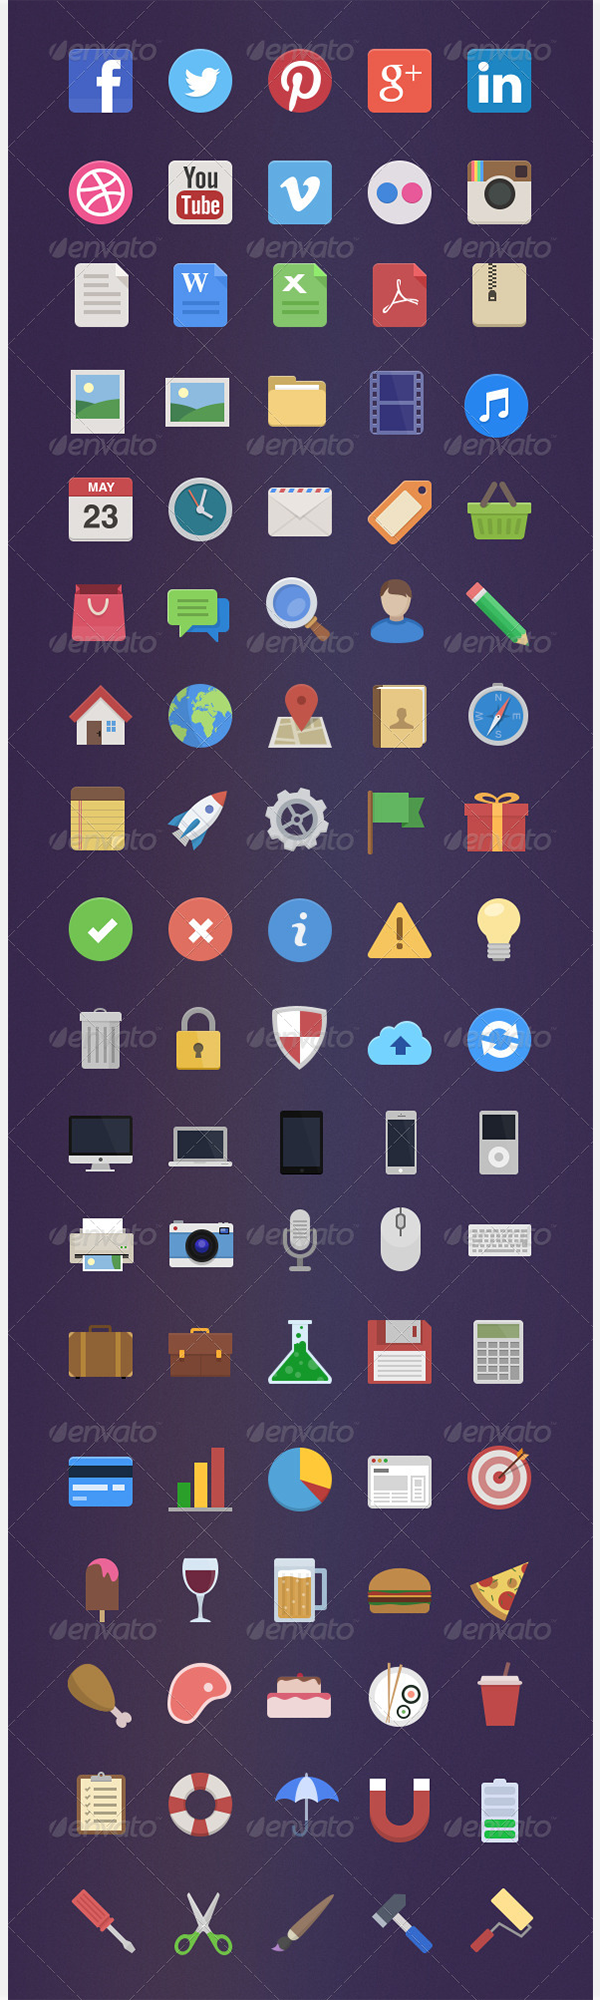 90 royalty free flat icons1